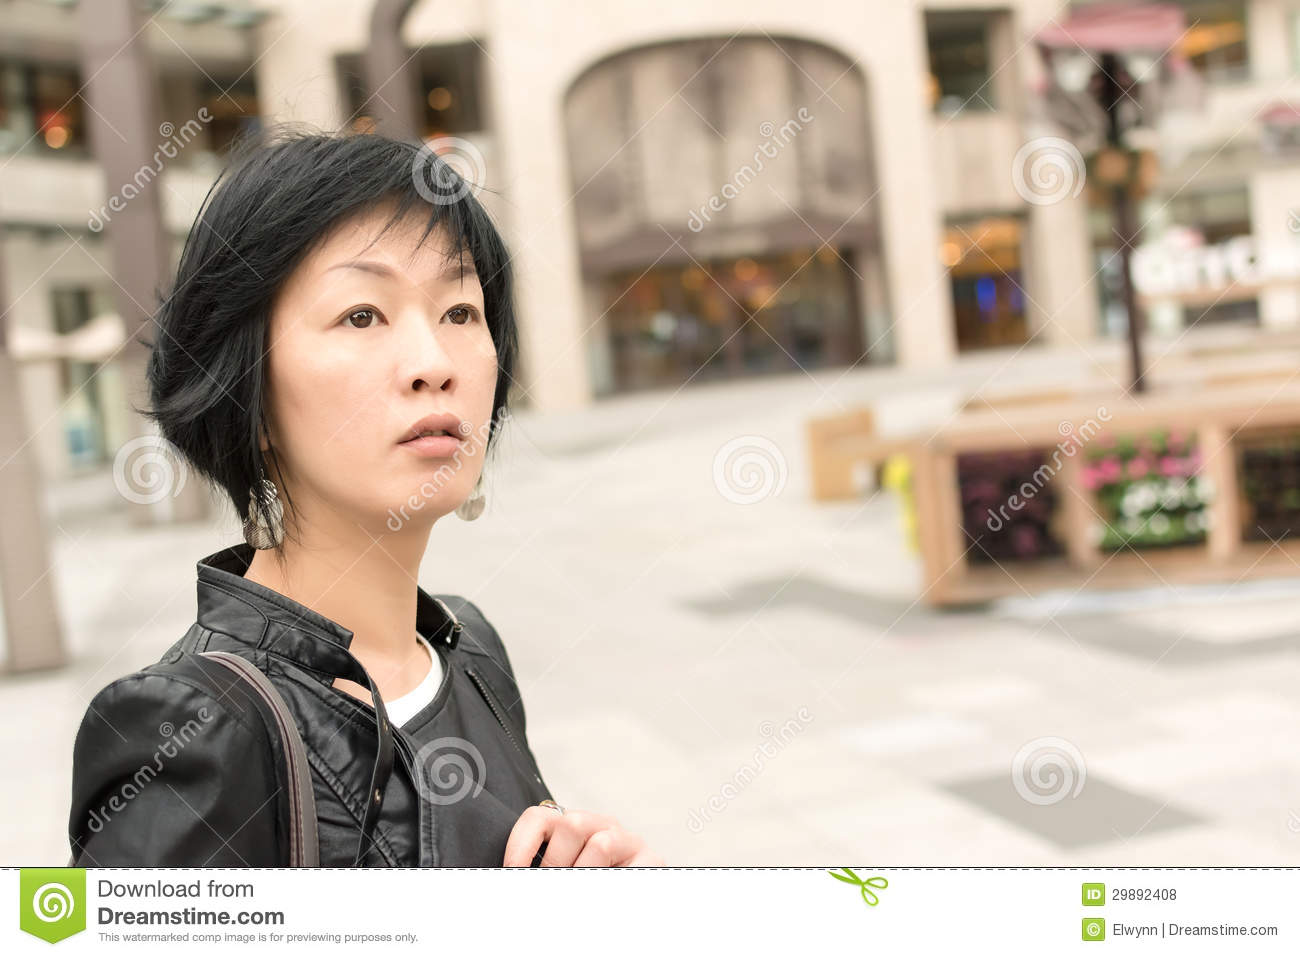 asian mature woman stock photo. image of fashionable - 29892408